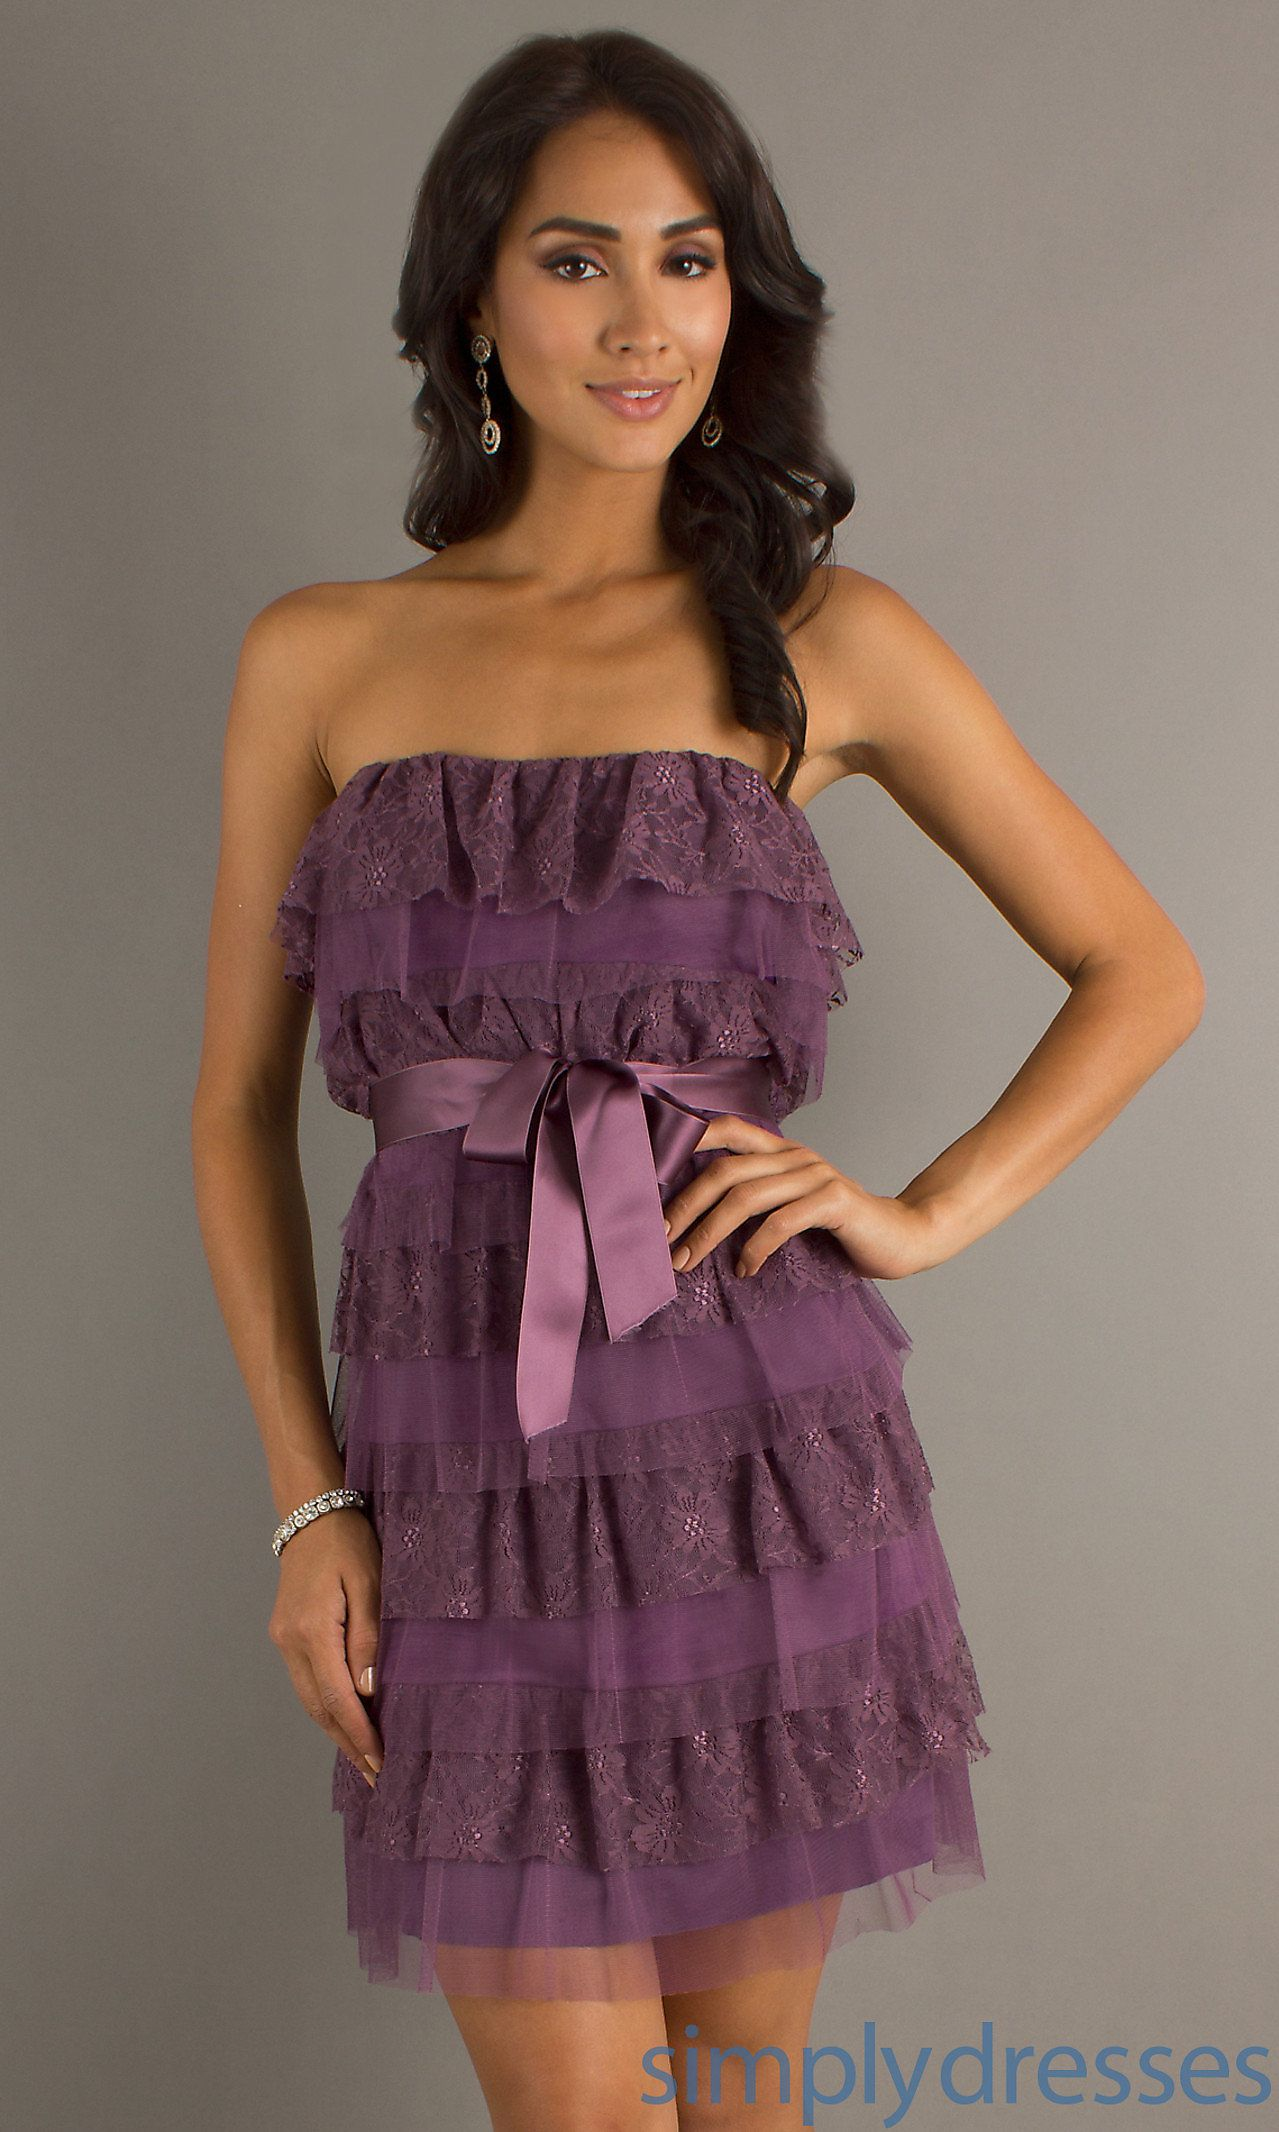 Short Strapless Tiered Dress AS-I635661g1 | Maybe one day ...